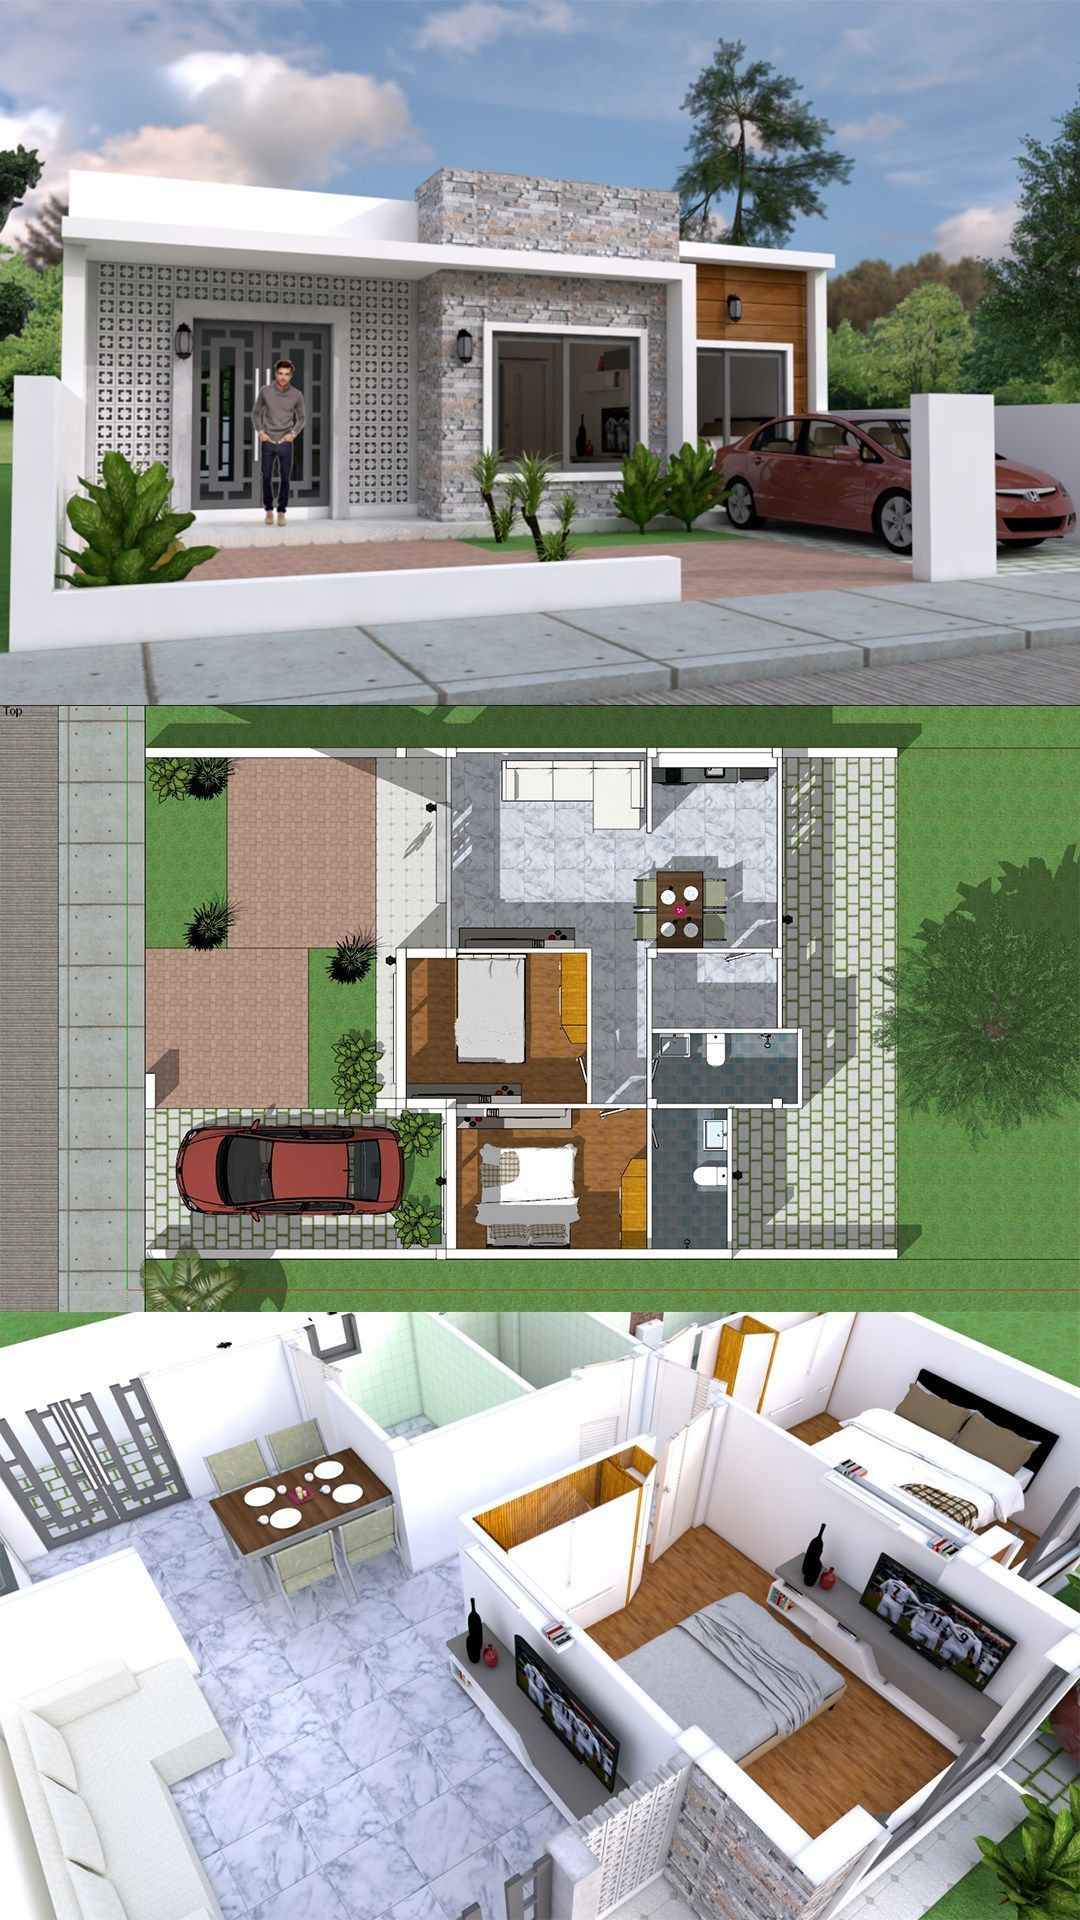 Simple Home Design Plan 10x8m with 2 Bedrooms imagens in ...